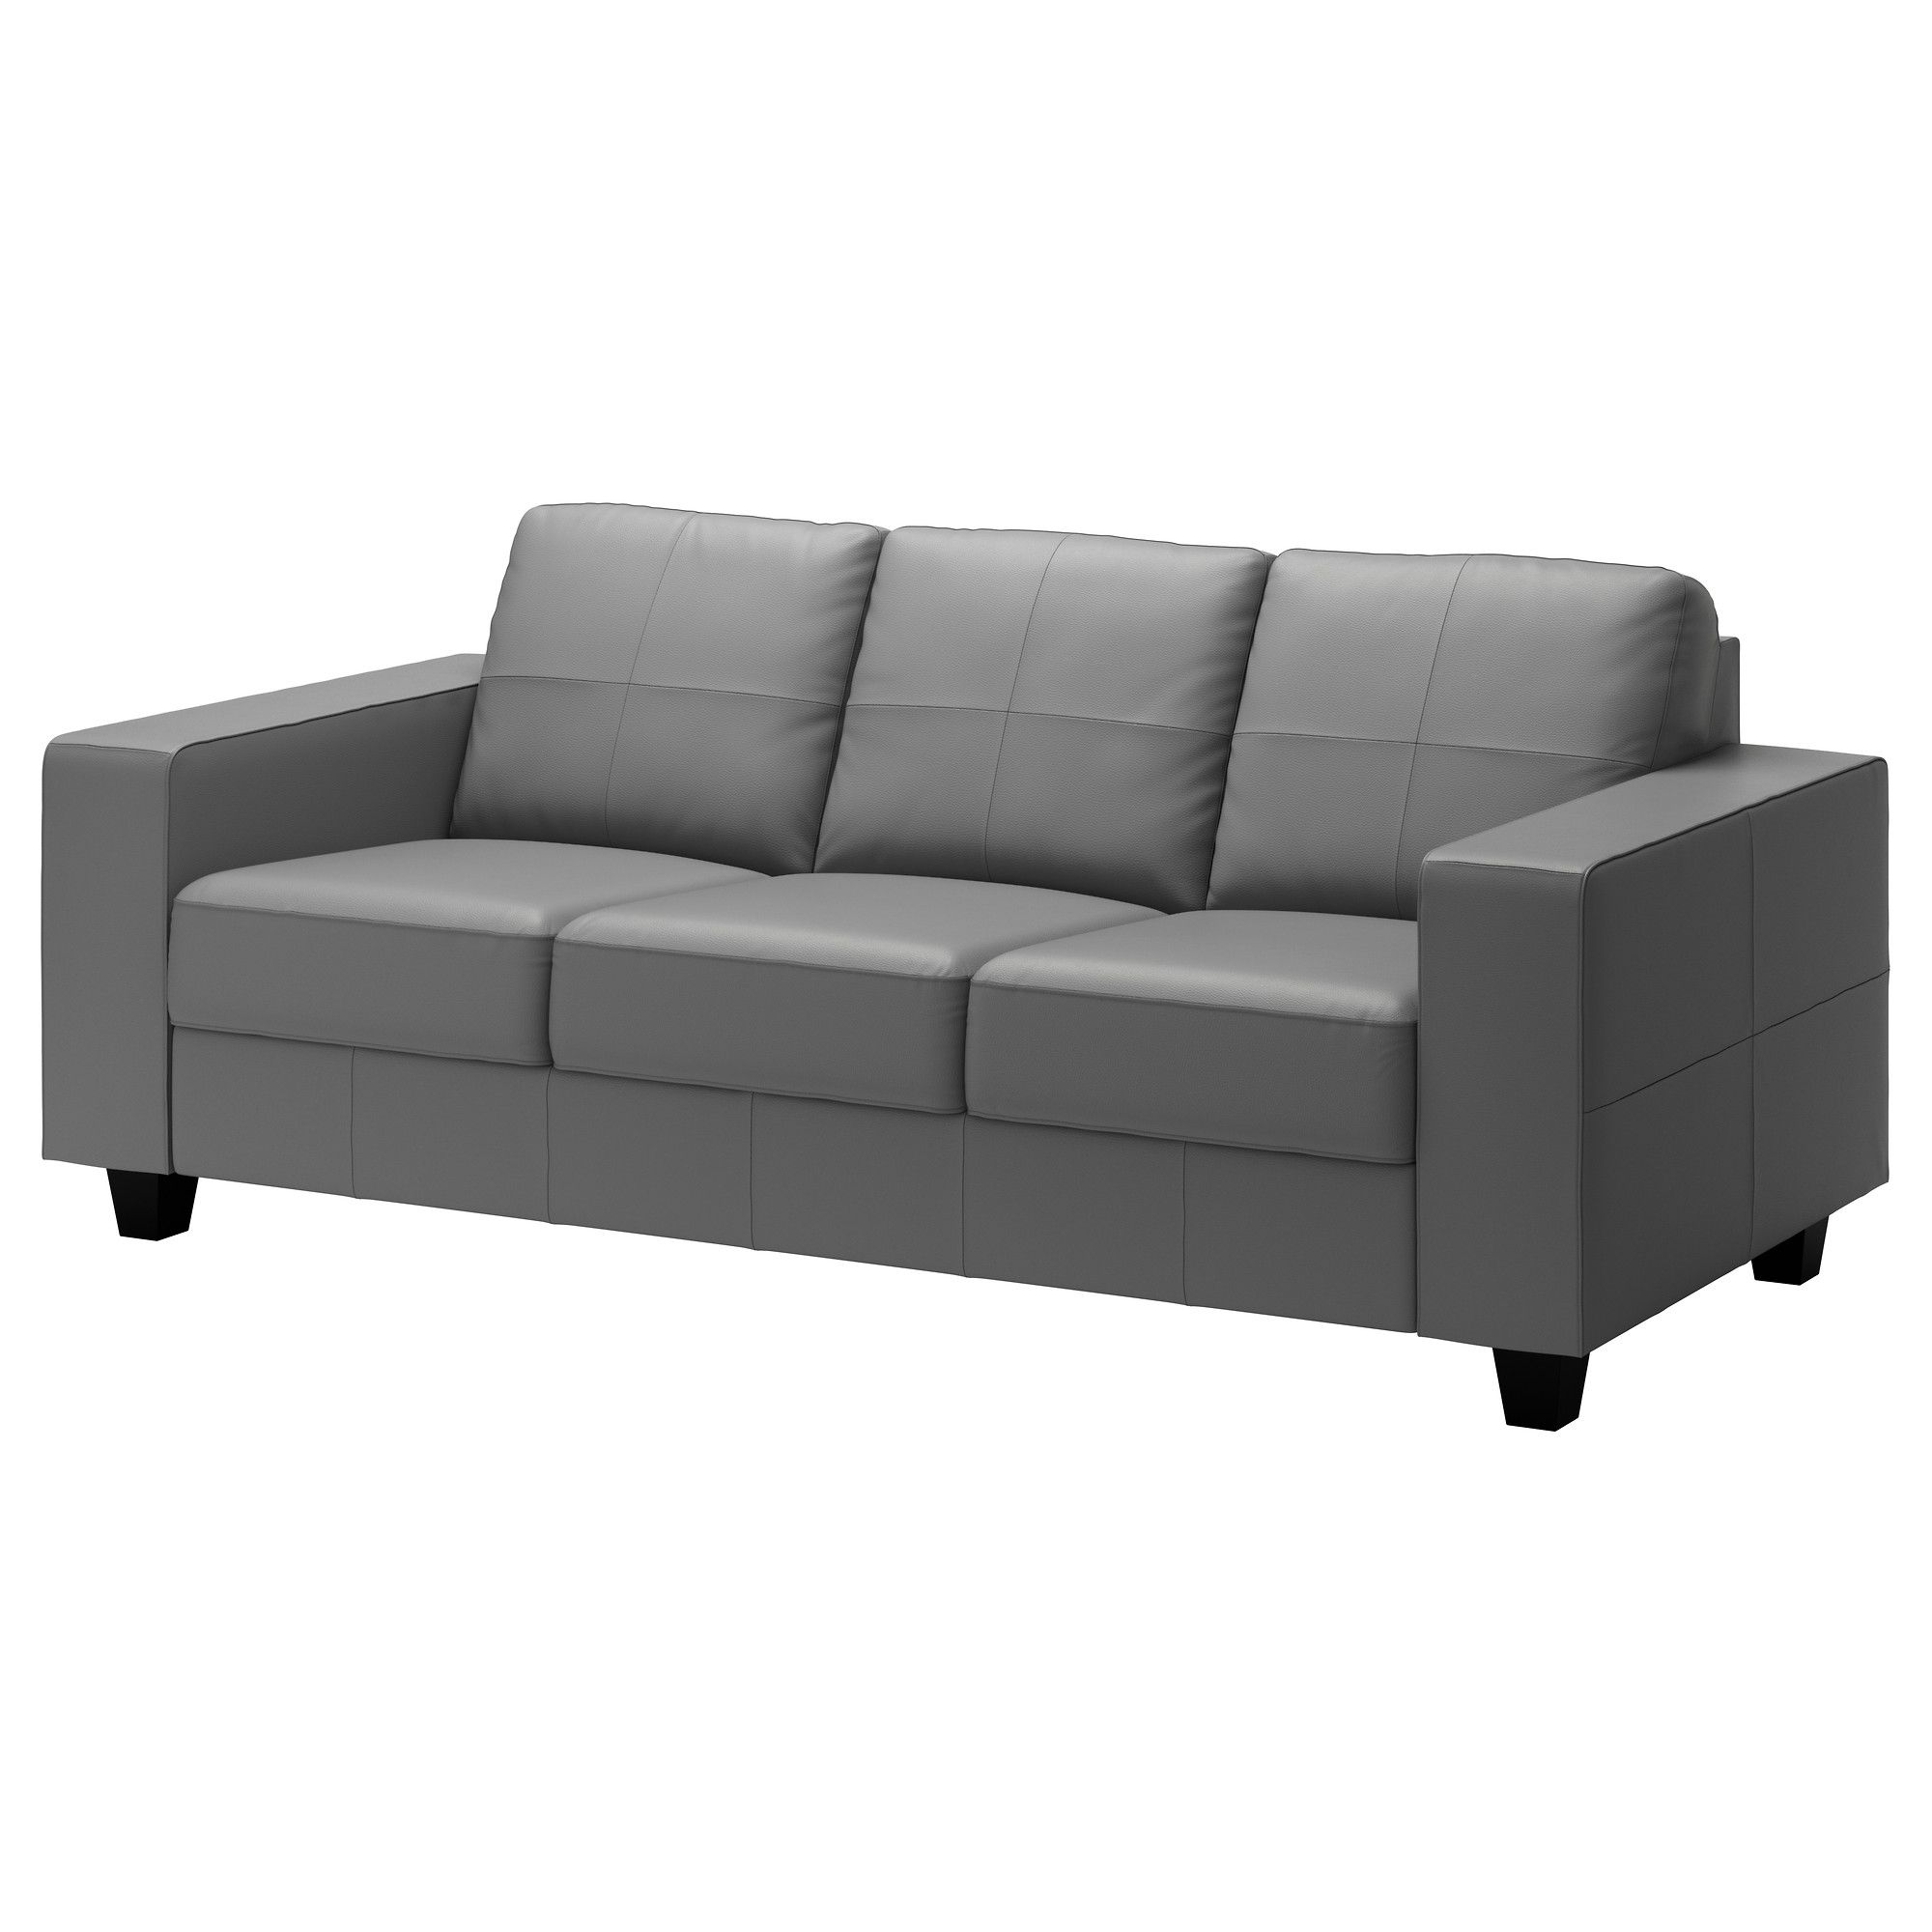 Shop For Furniture Home Accessories More Ikea Sofa Leather